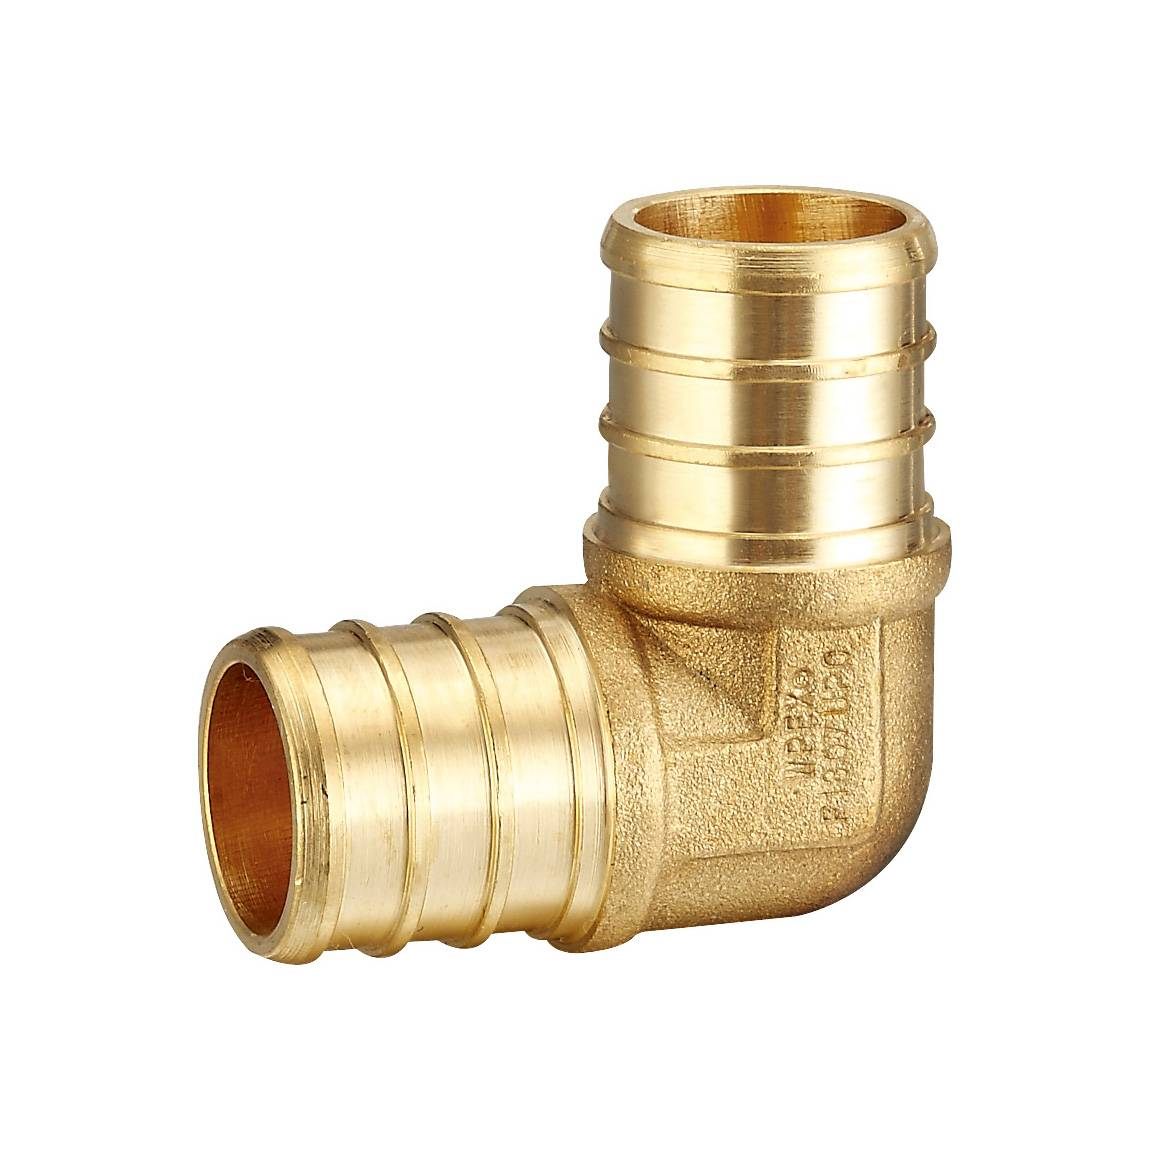 Brass Fitting F1807 Elbow Featured Image